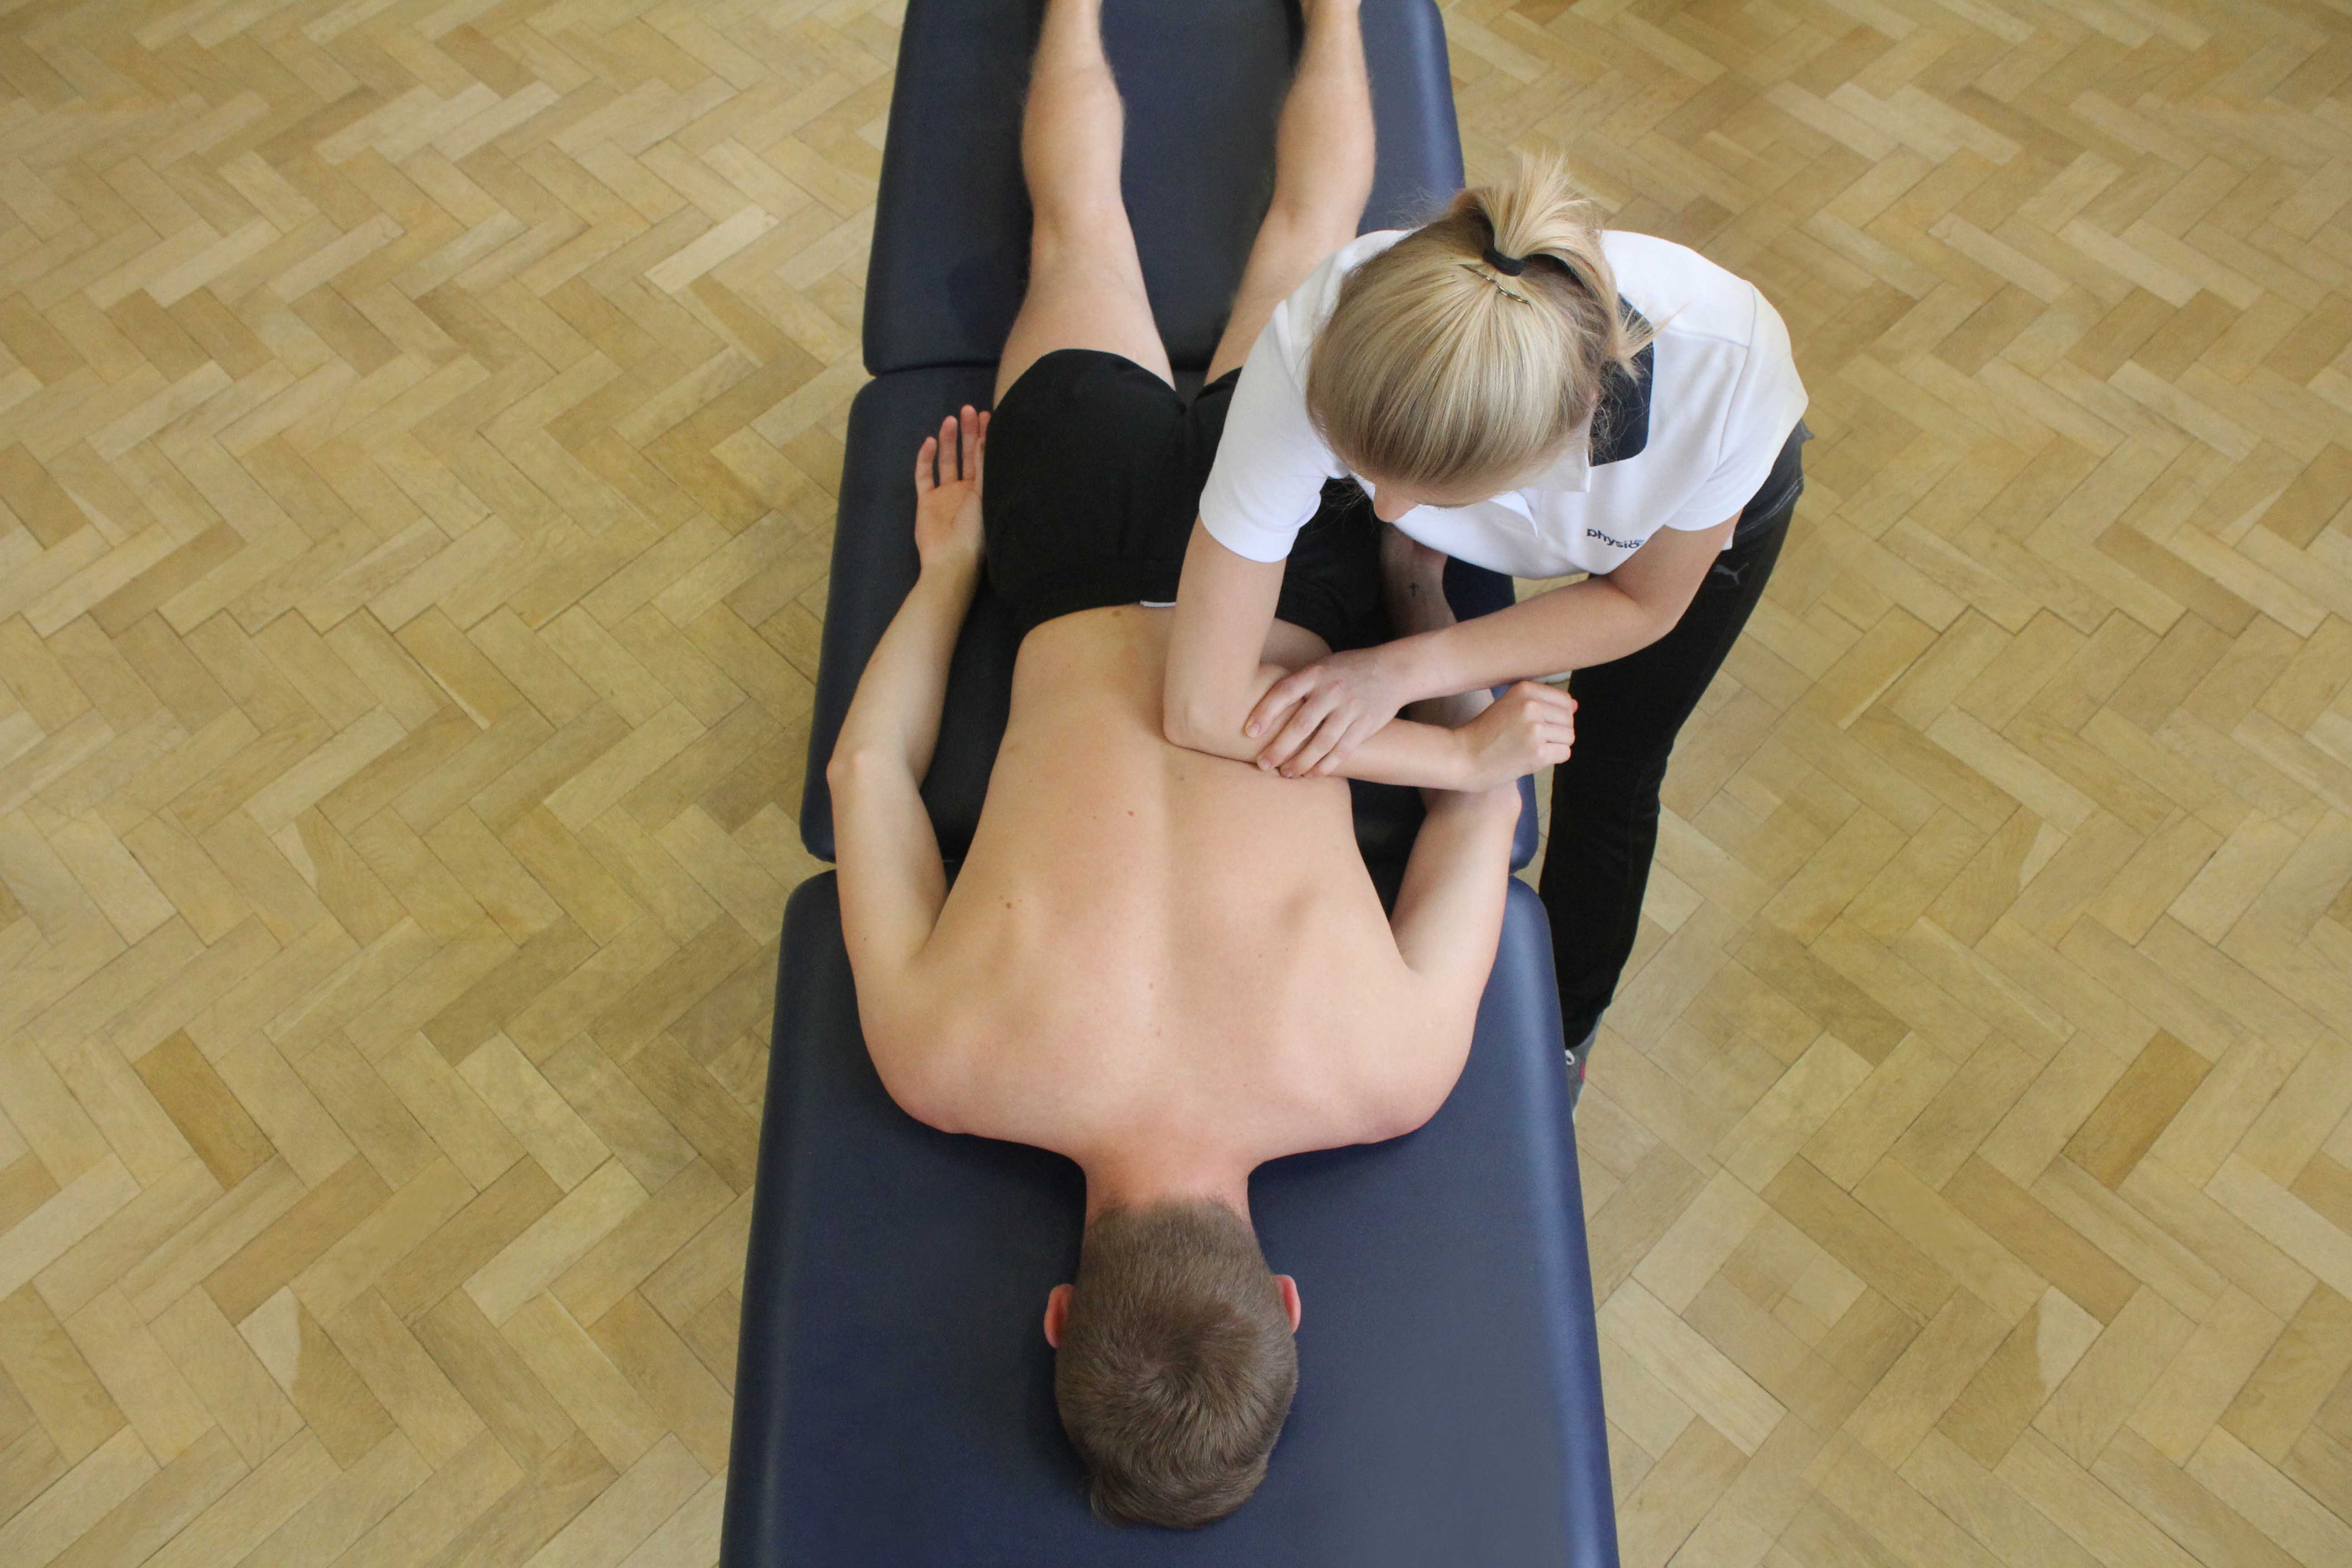 Deep tissue massage applied to lower latissimus dorsi muscle